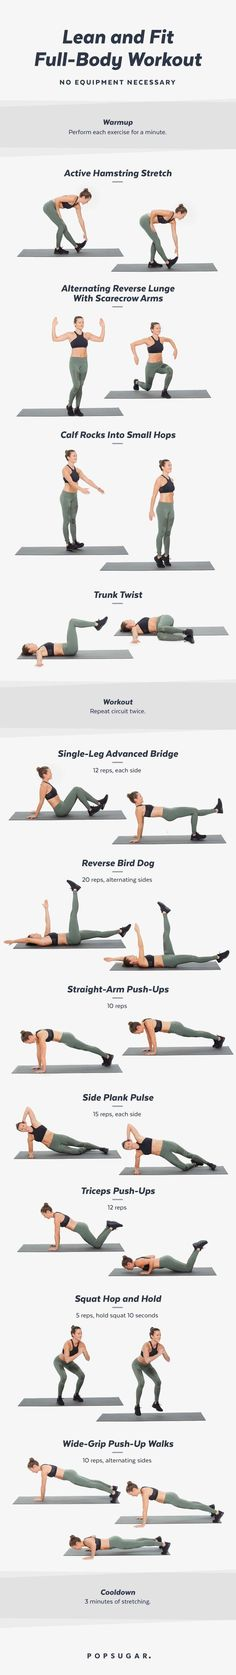 At Home Cardio Workout To Rev Your Metabolism And Work Your Legs | Cardio  Workouts And Cardio